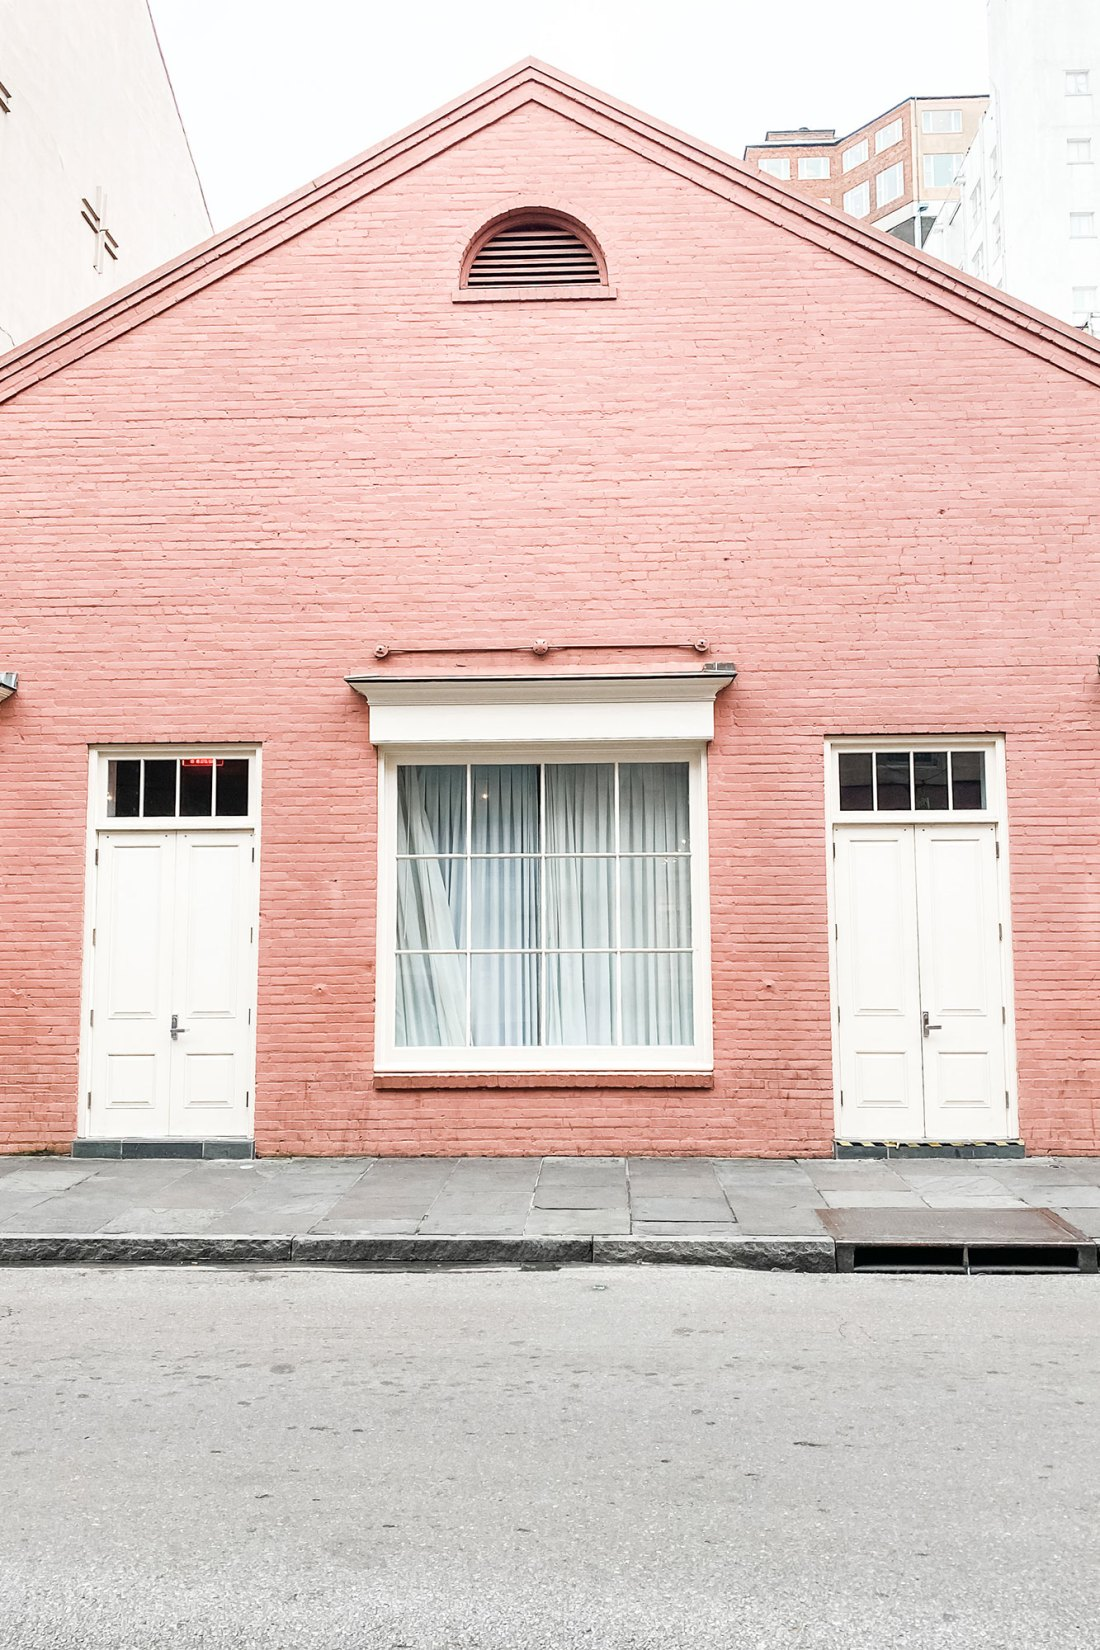 Pink building with white doors in New Orleans